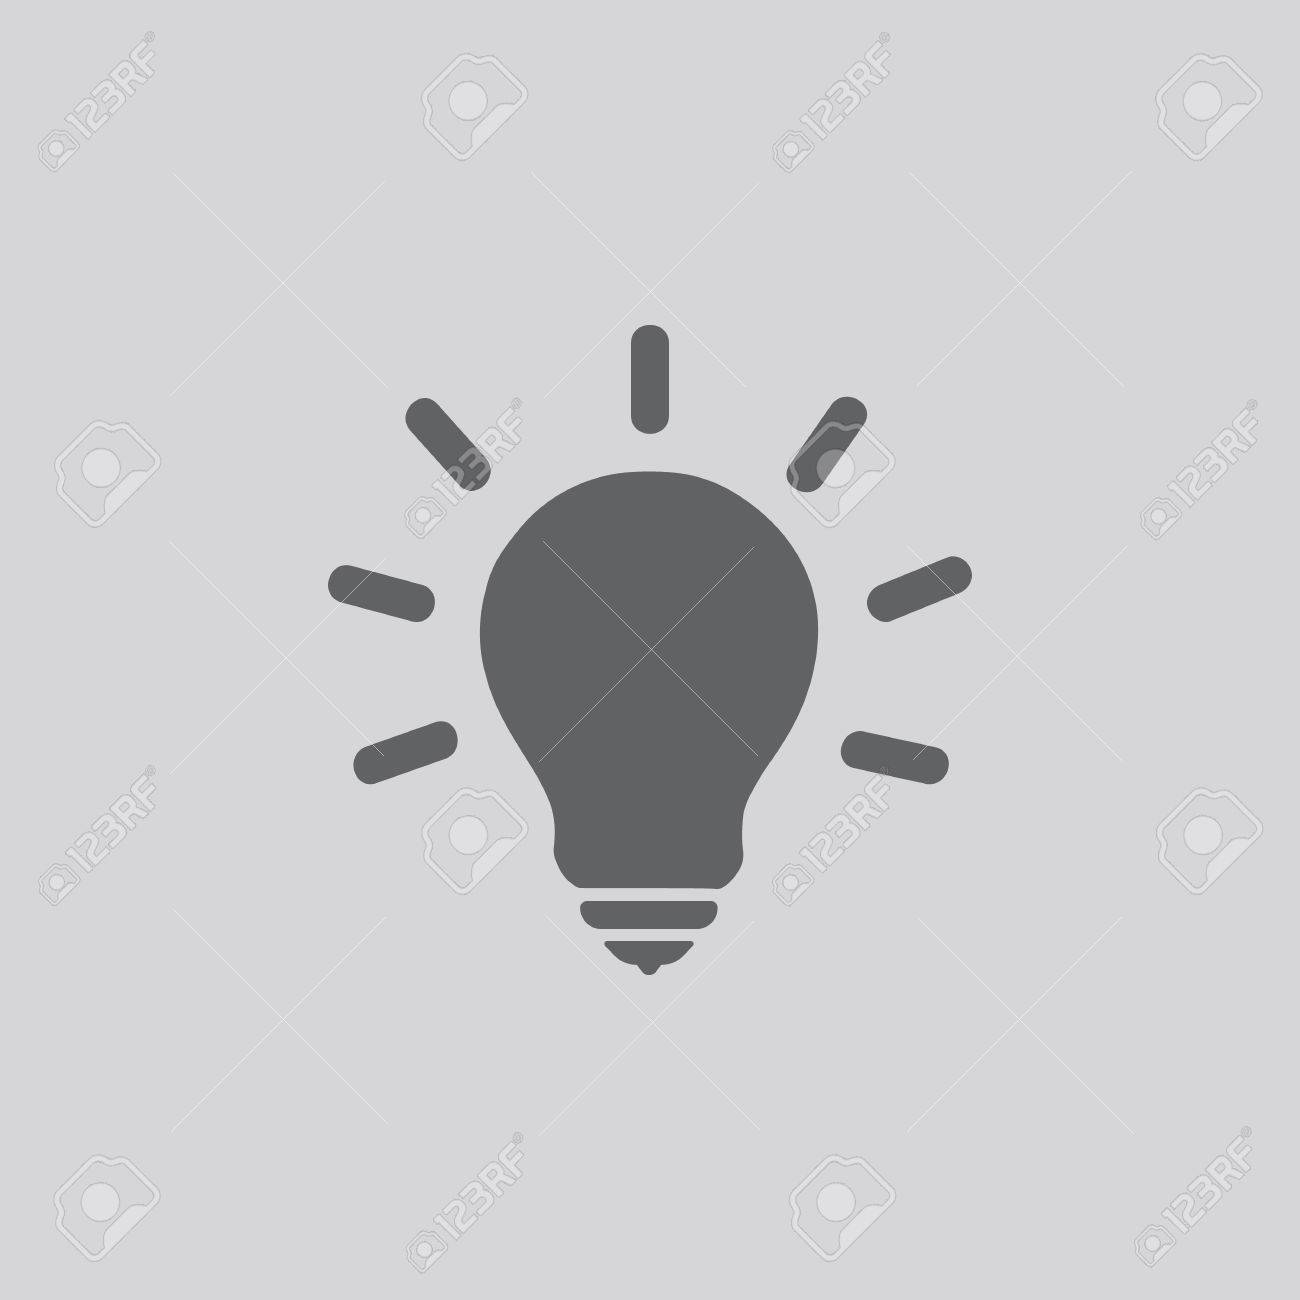 Light Bulb Line Icon Vector Idea Sign Solution Thinking Concept Lighting Electric